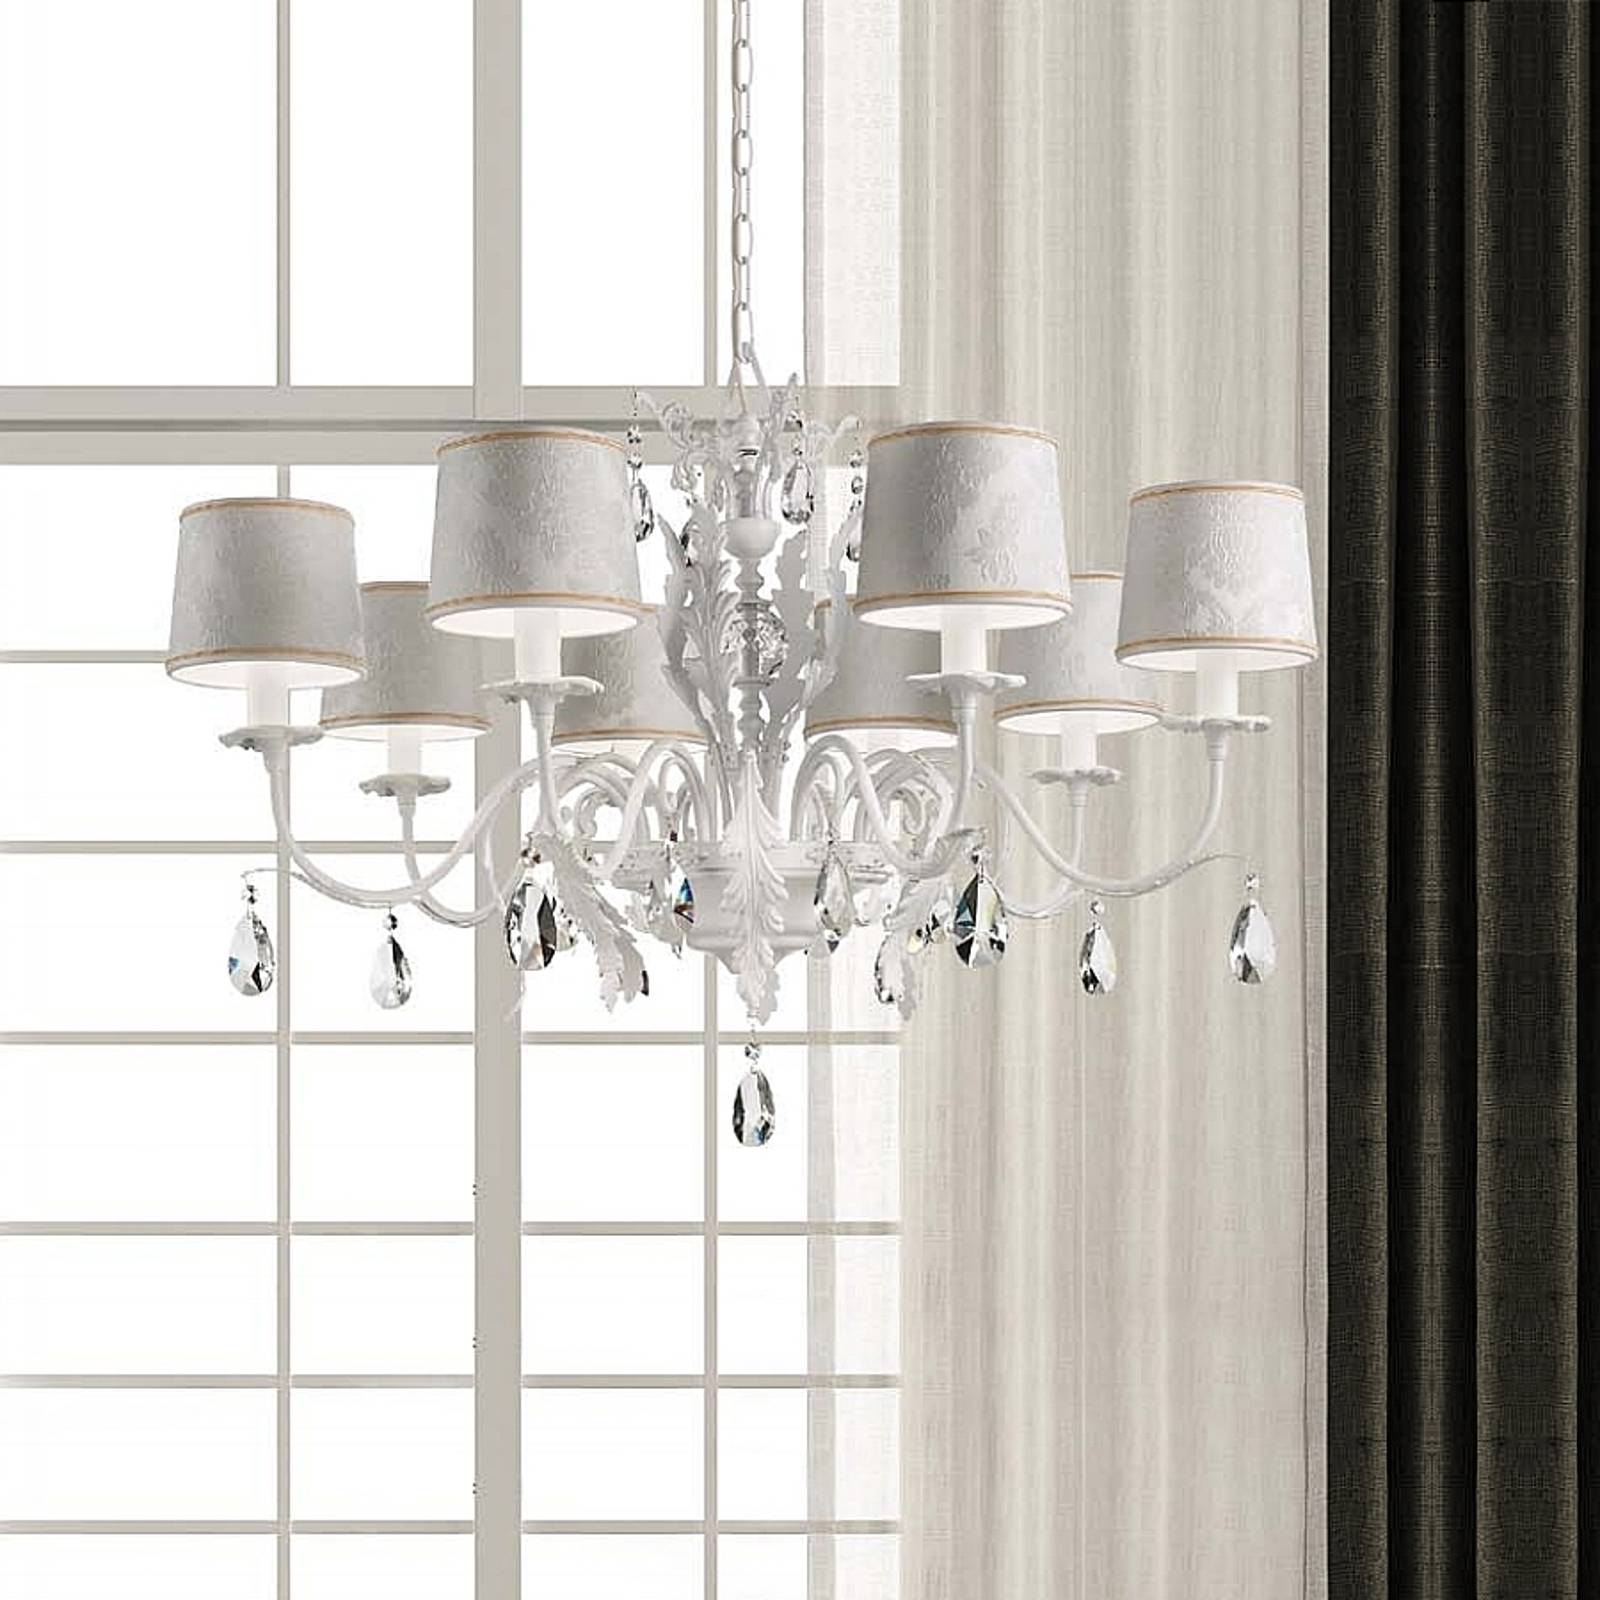 Angelis chandelier with damask shades 8-bulb white from Masiero